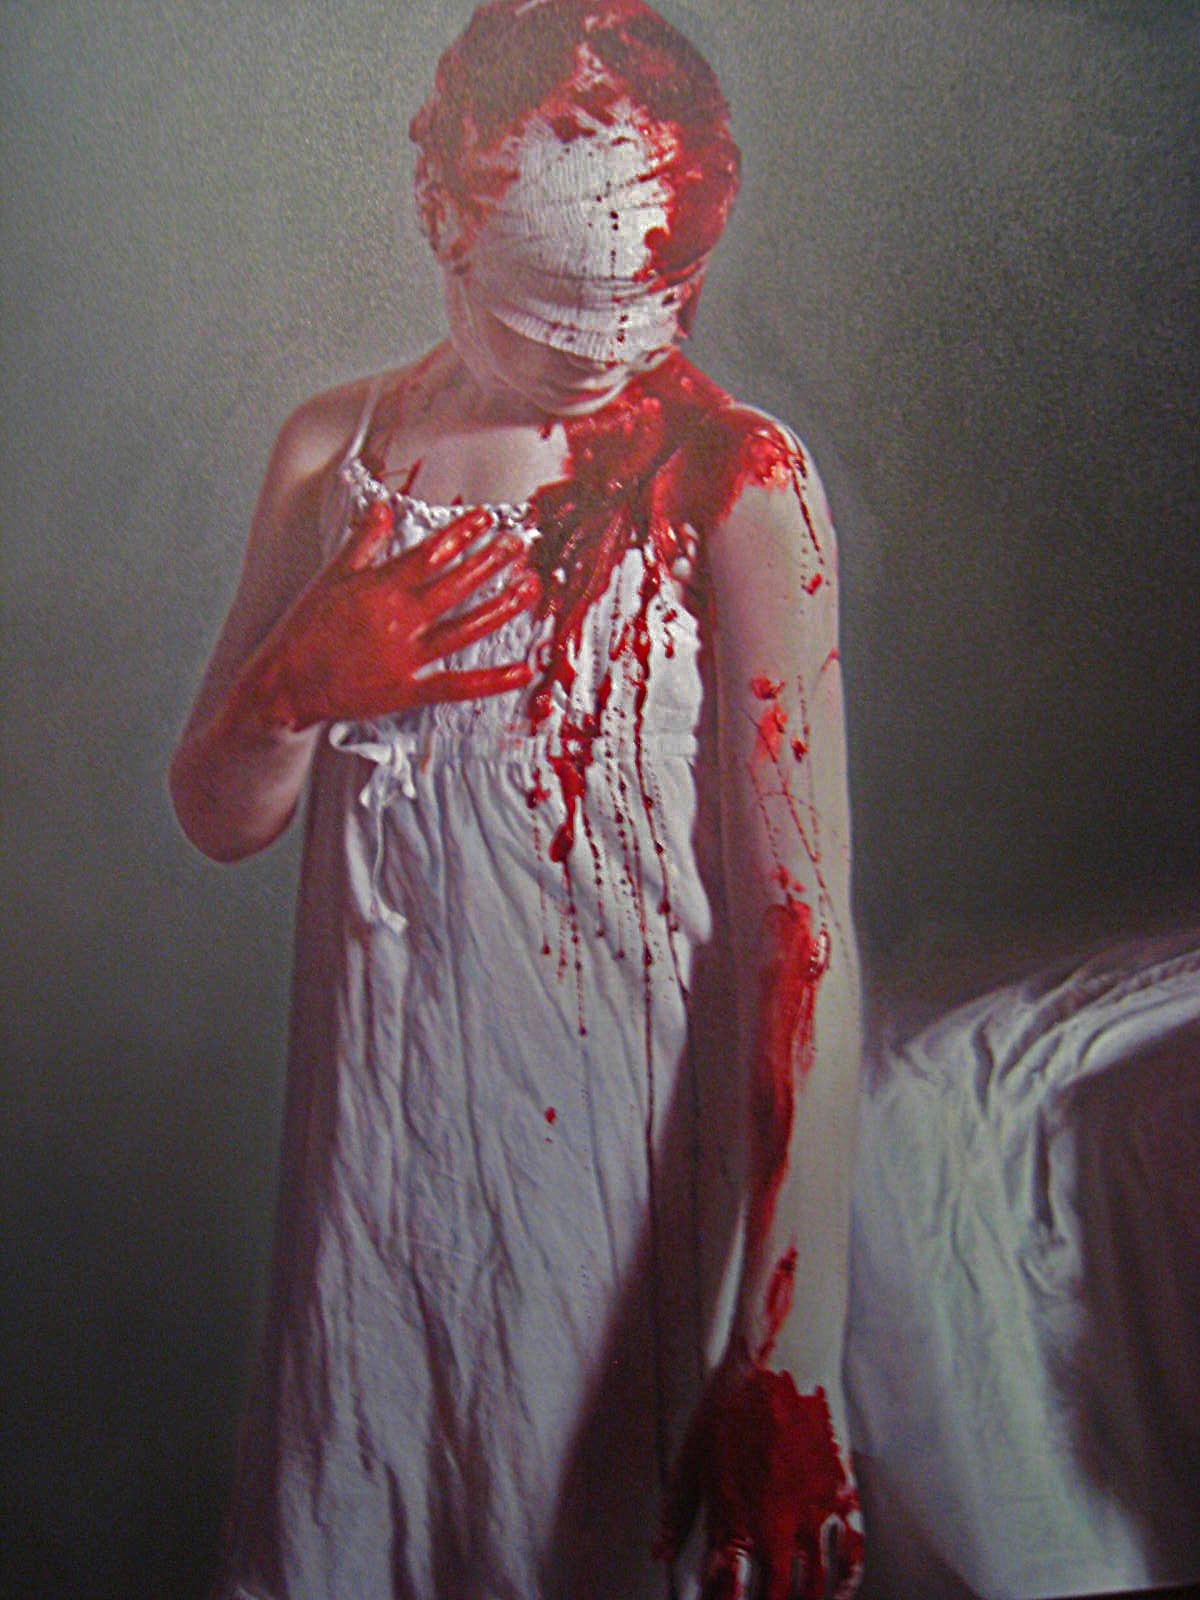 Helnwein - Disasters of Wars 3